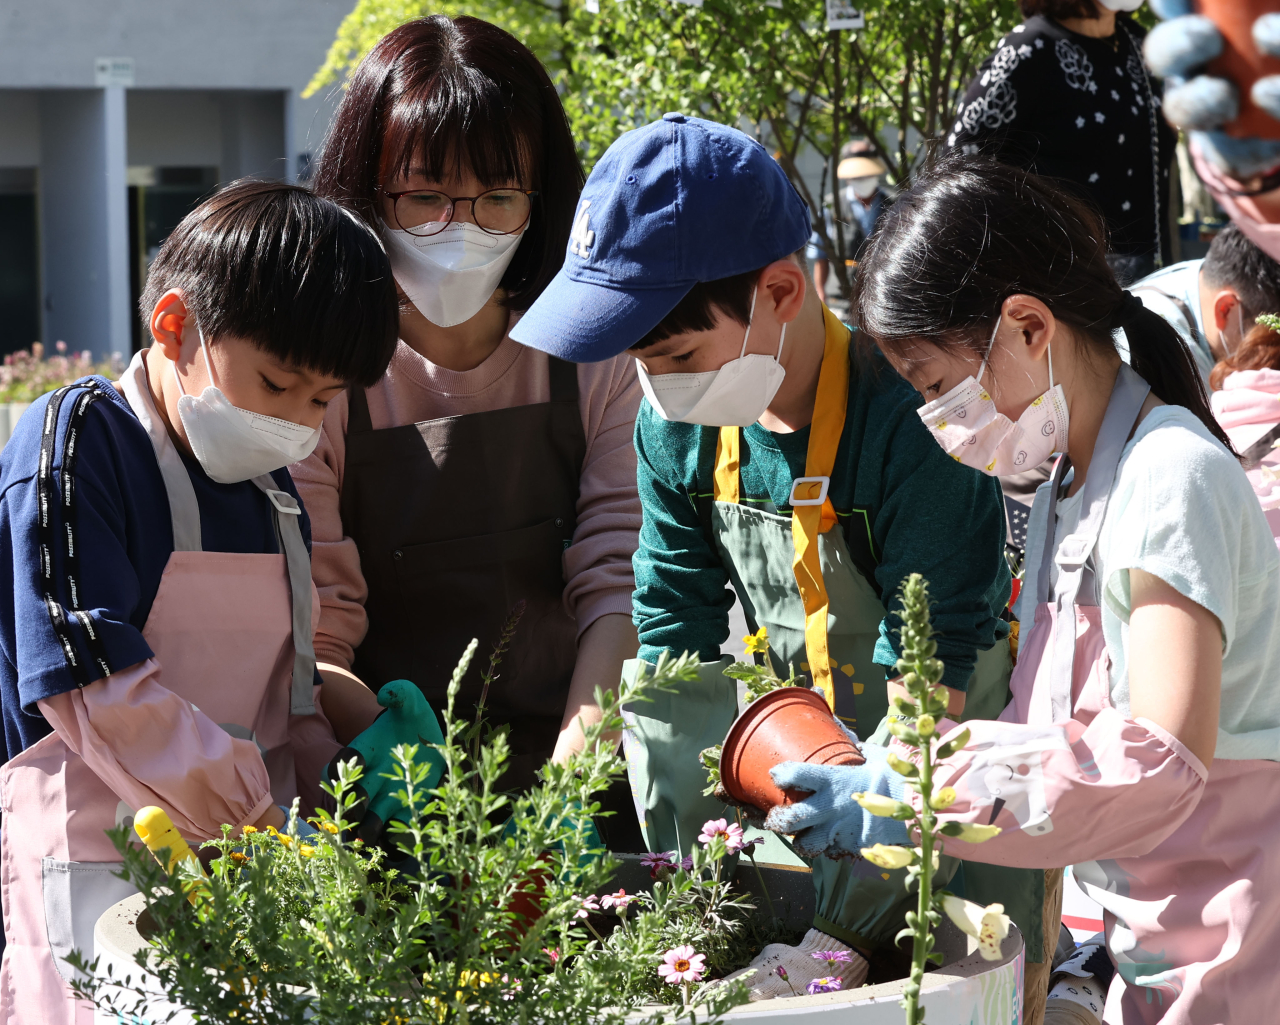 In this photo taken on Sunday, a family participates in an offline gardening event held in Manri-dong, central Seoul, amid the COVID-19 pandemic as part of the Seoul International Garden Show scheduled from May 14-20. (Yonhap)